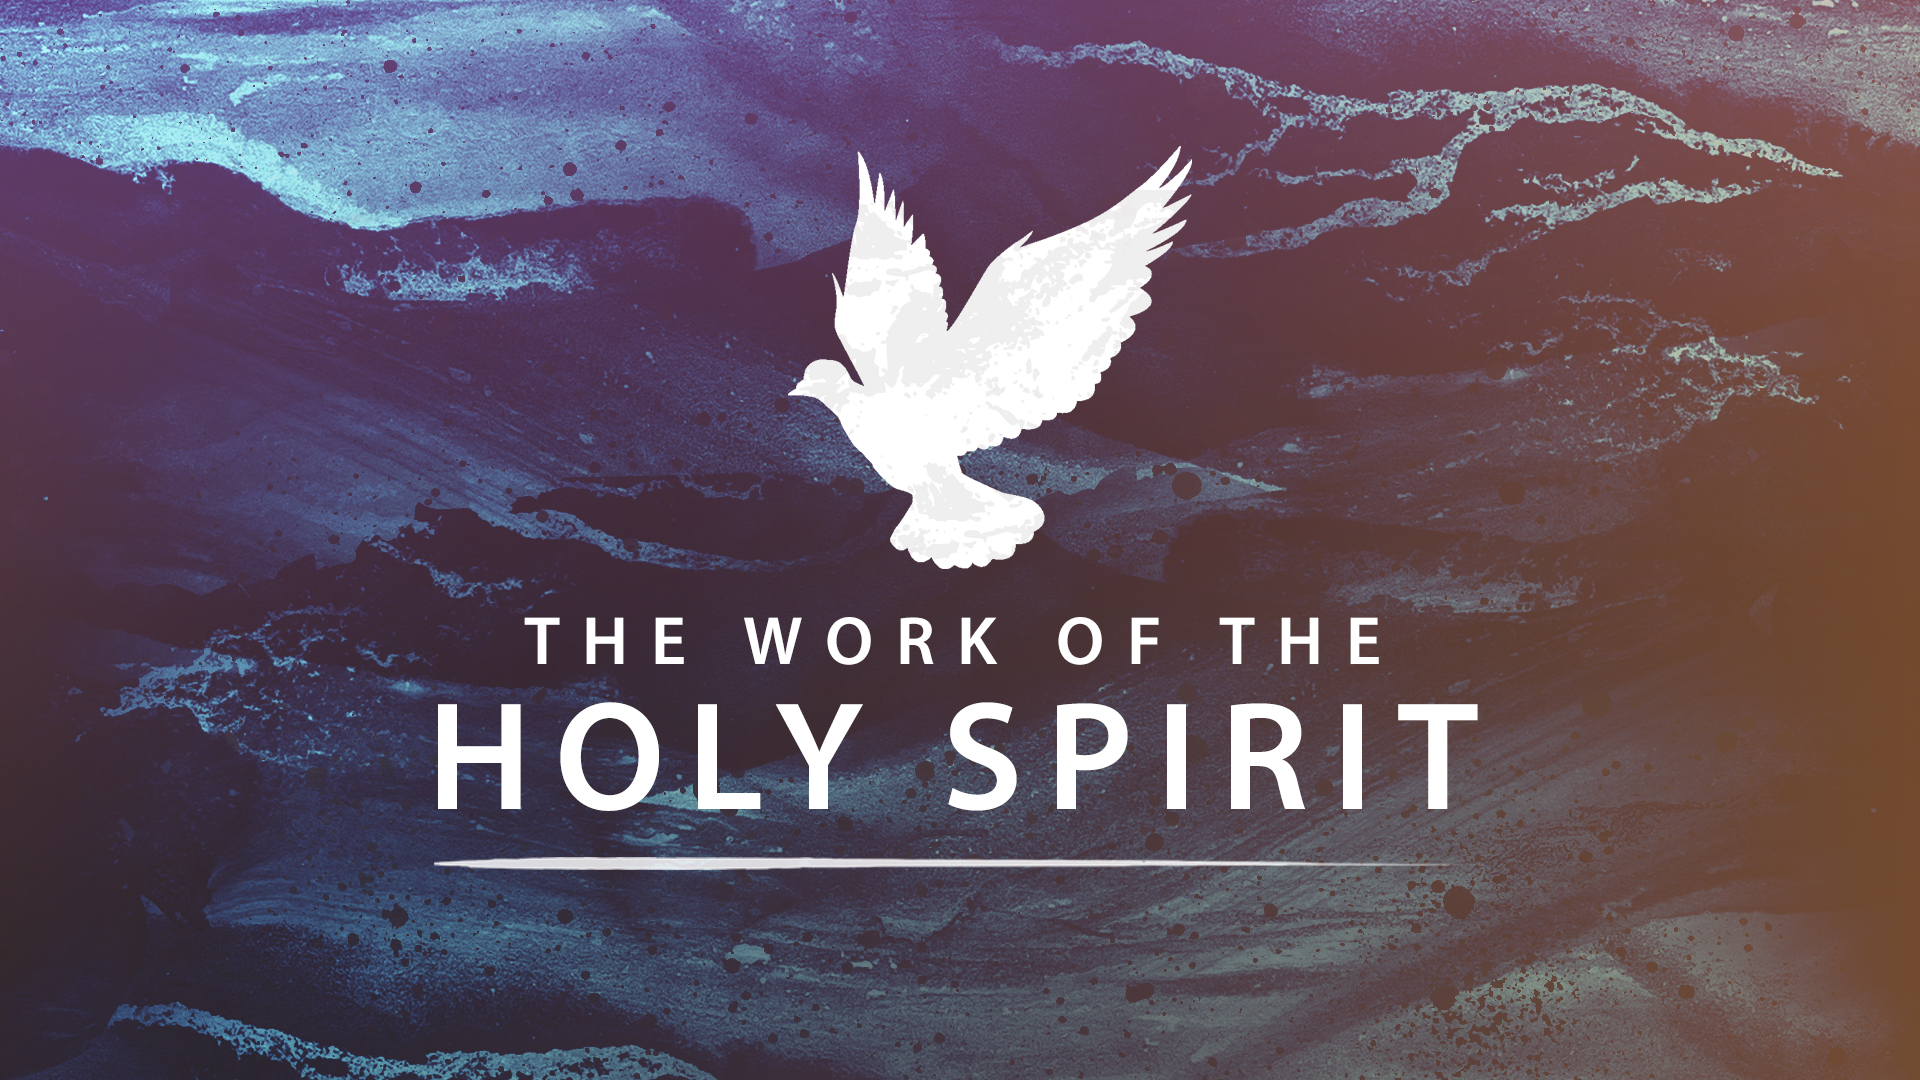 The work of the holy spirit grace fellowship the work of the holy spirit thecheapjerseys Gallery